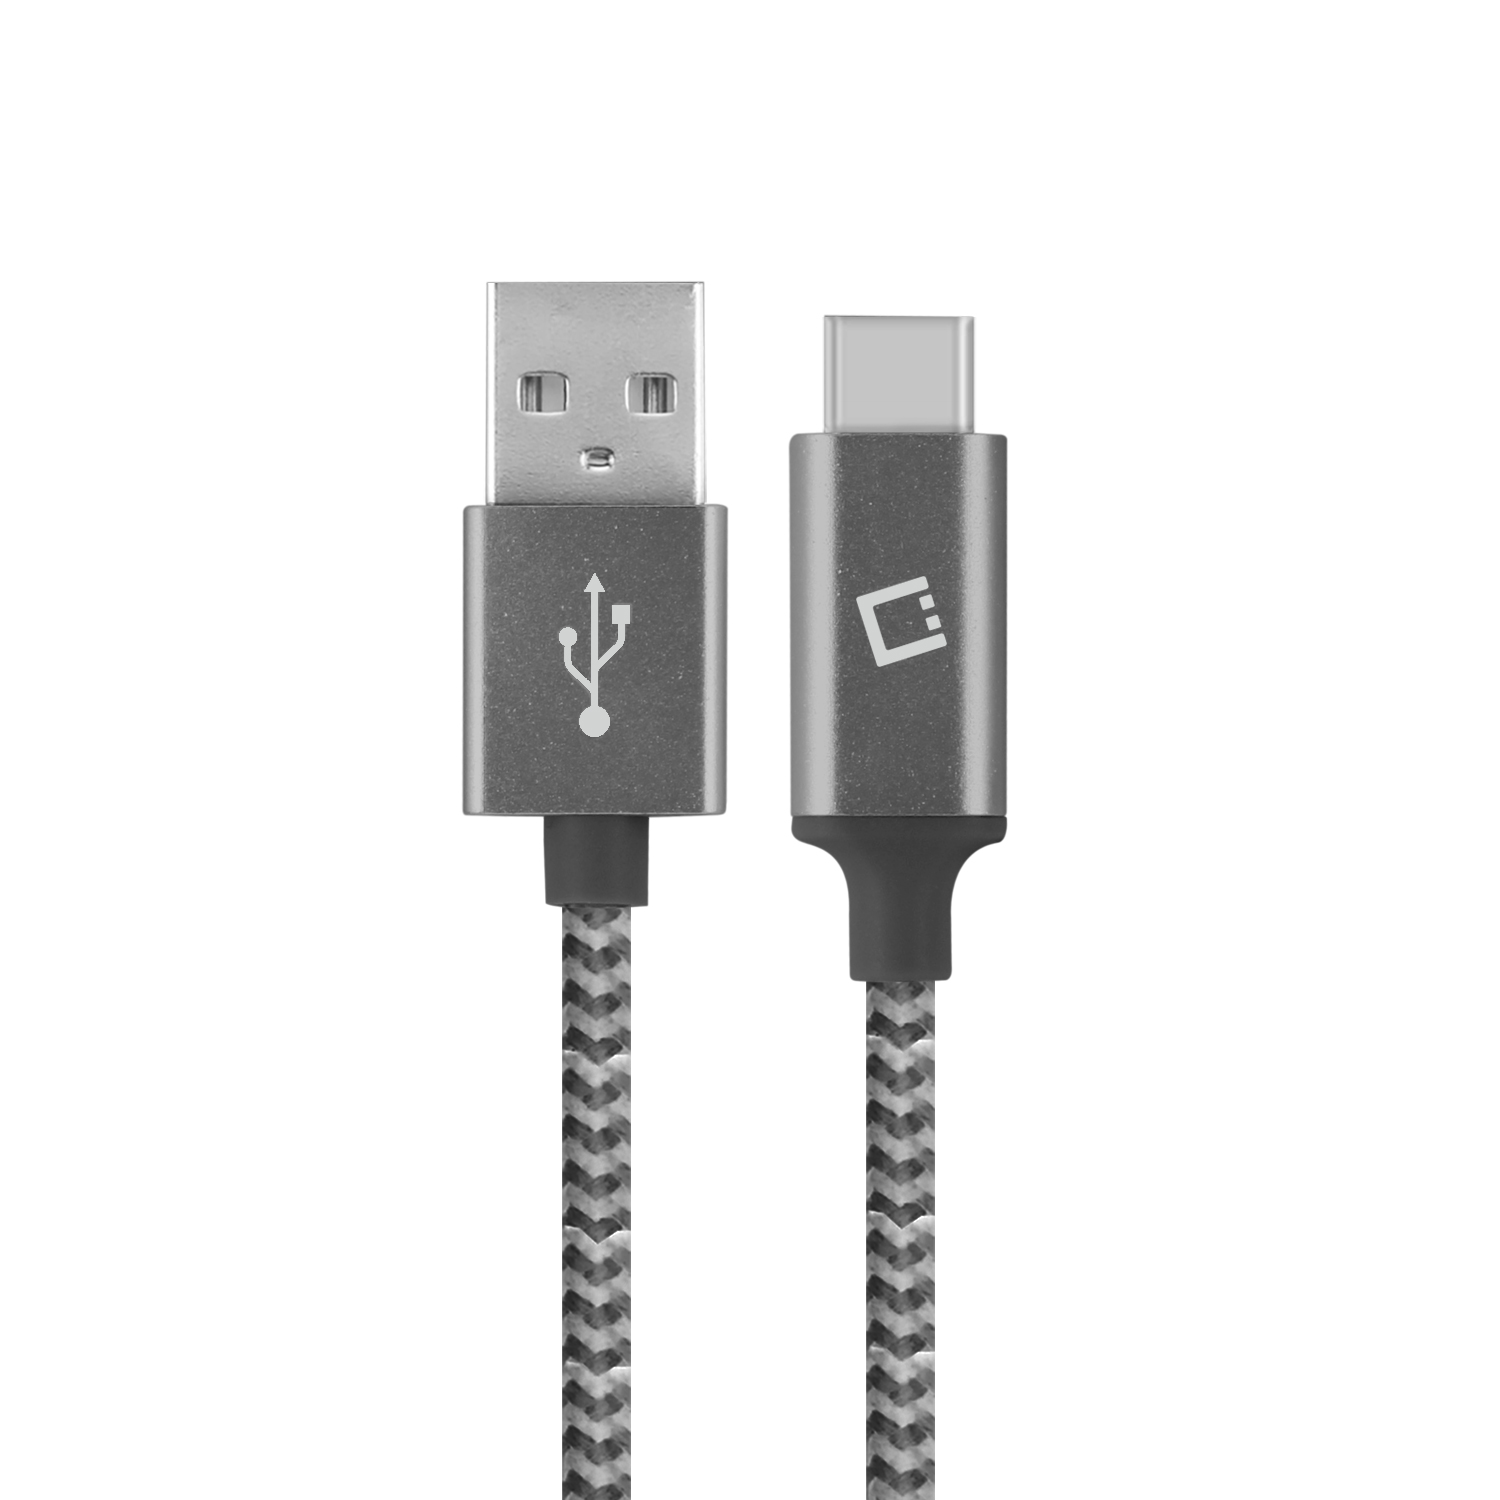 Sony Xperia X Compact USB Type-C To Type-A Braided Data Power Cable Black 4ft Round